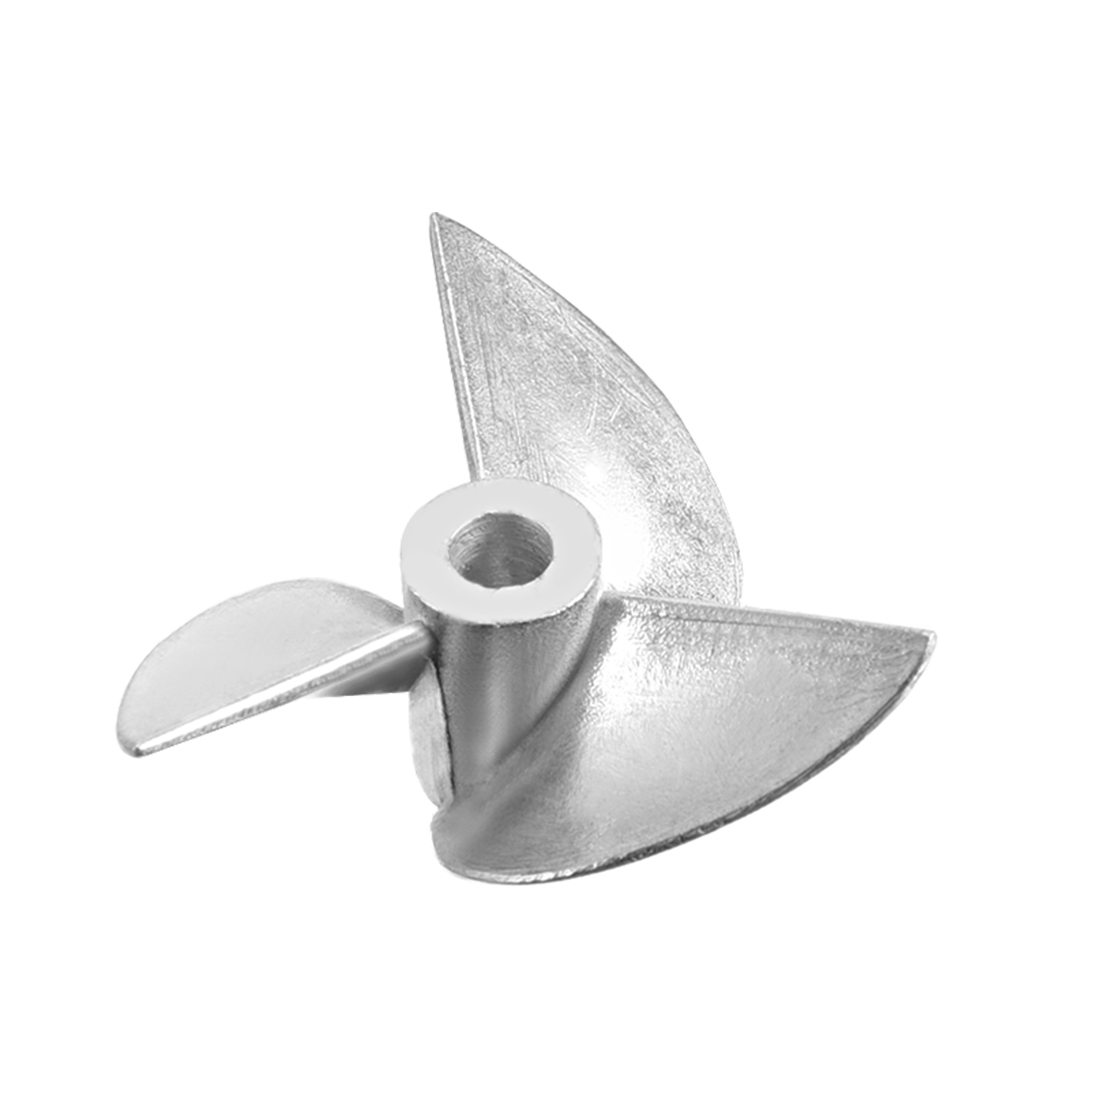 36mm Dia P/D 1.4 Aluminium Alloy 3-Vane CCW Reverse Rotating Propeller Prop for 4mm Dia Shaft RC Boat Ship Model